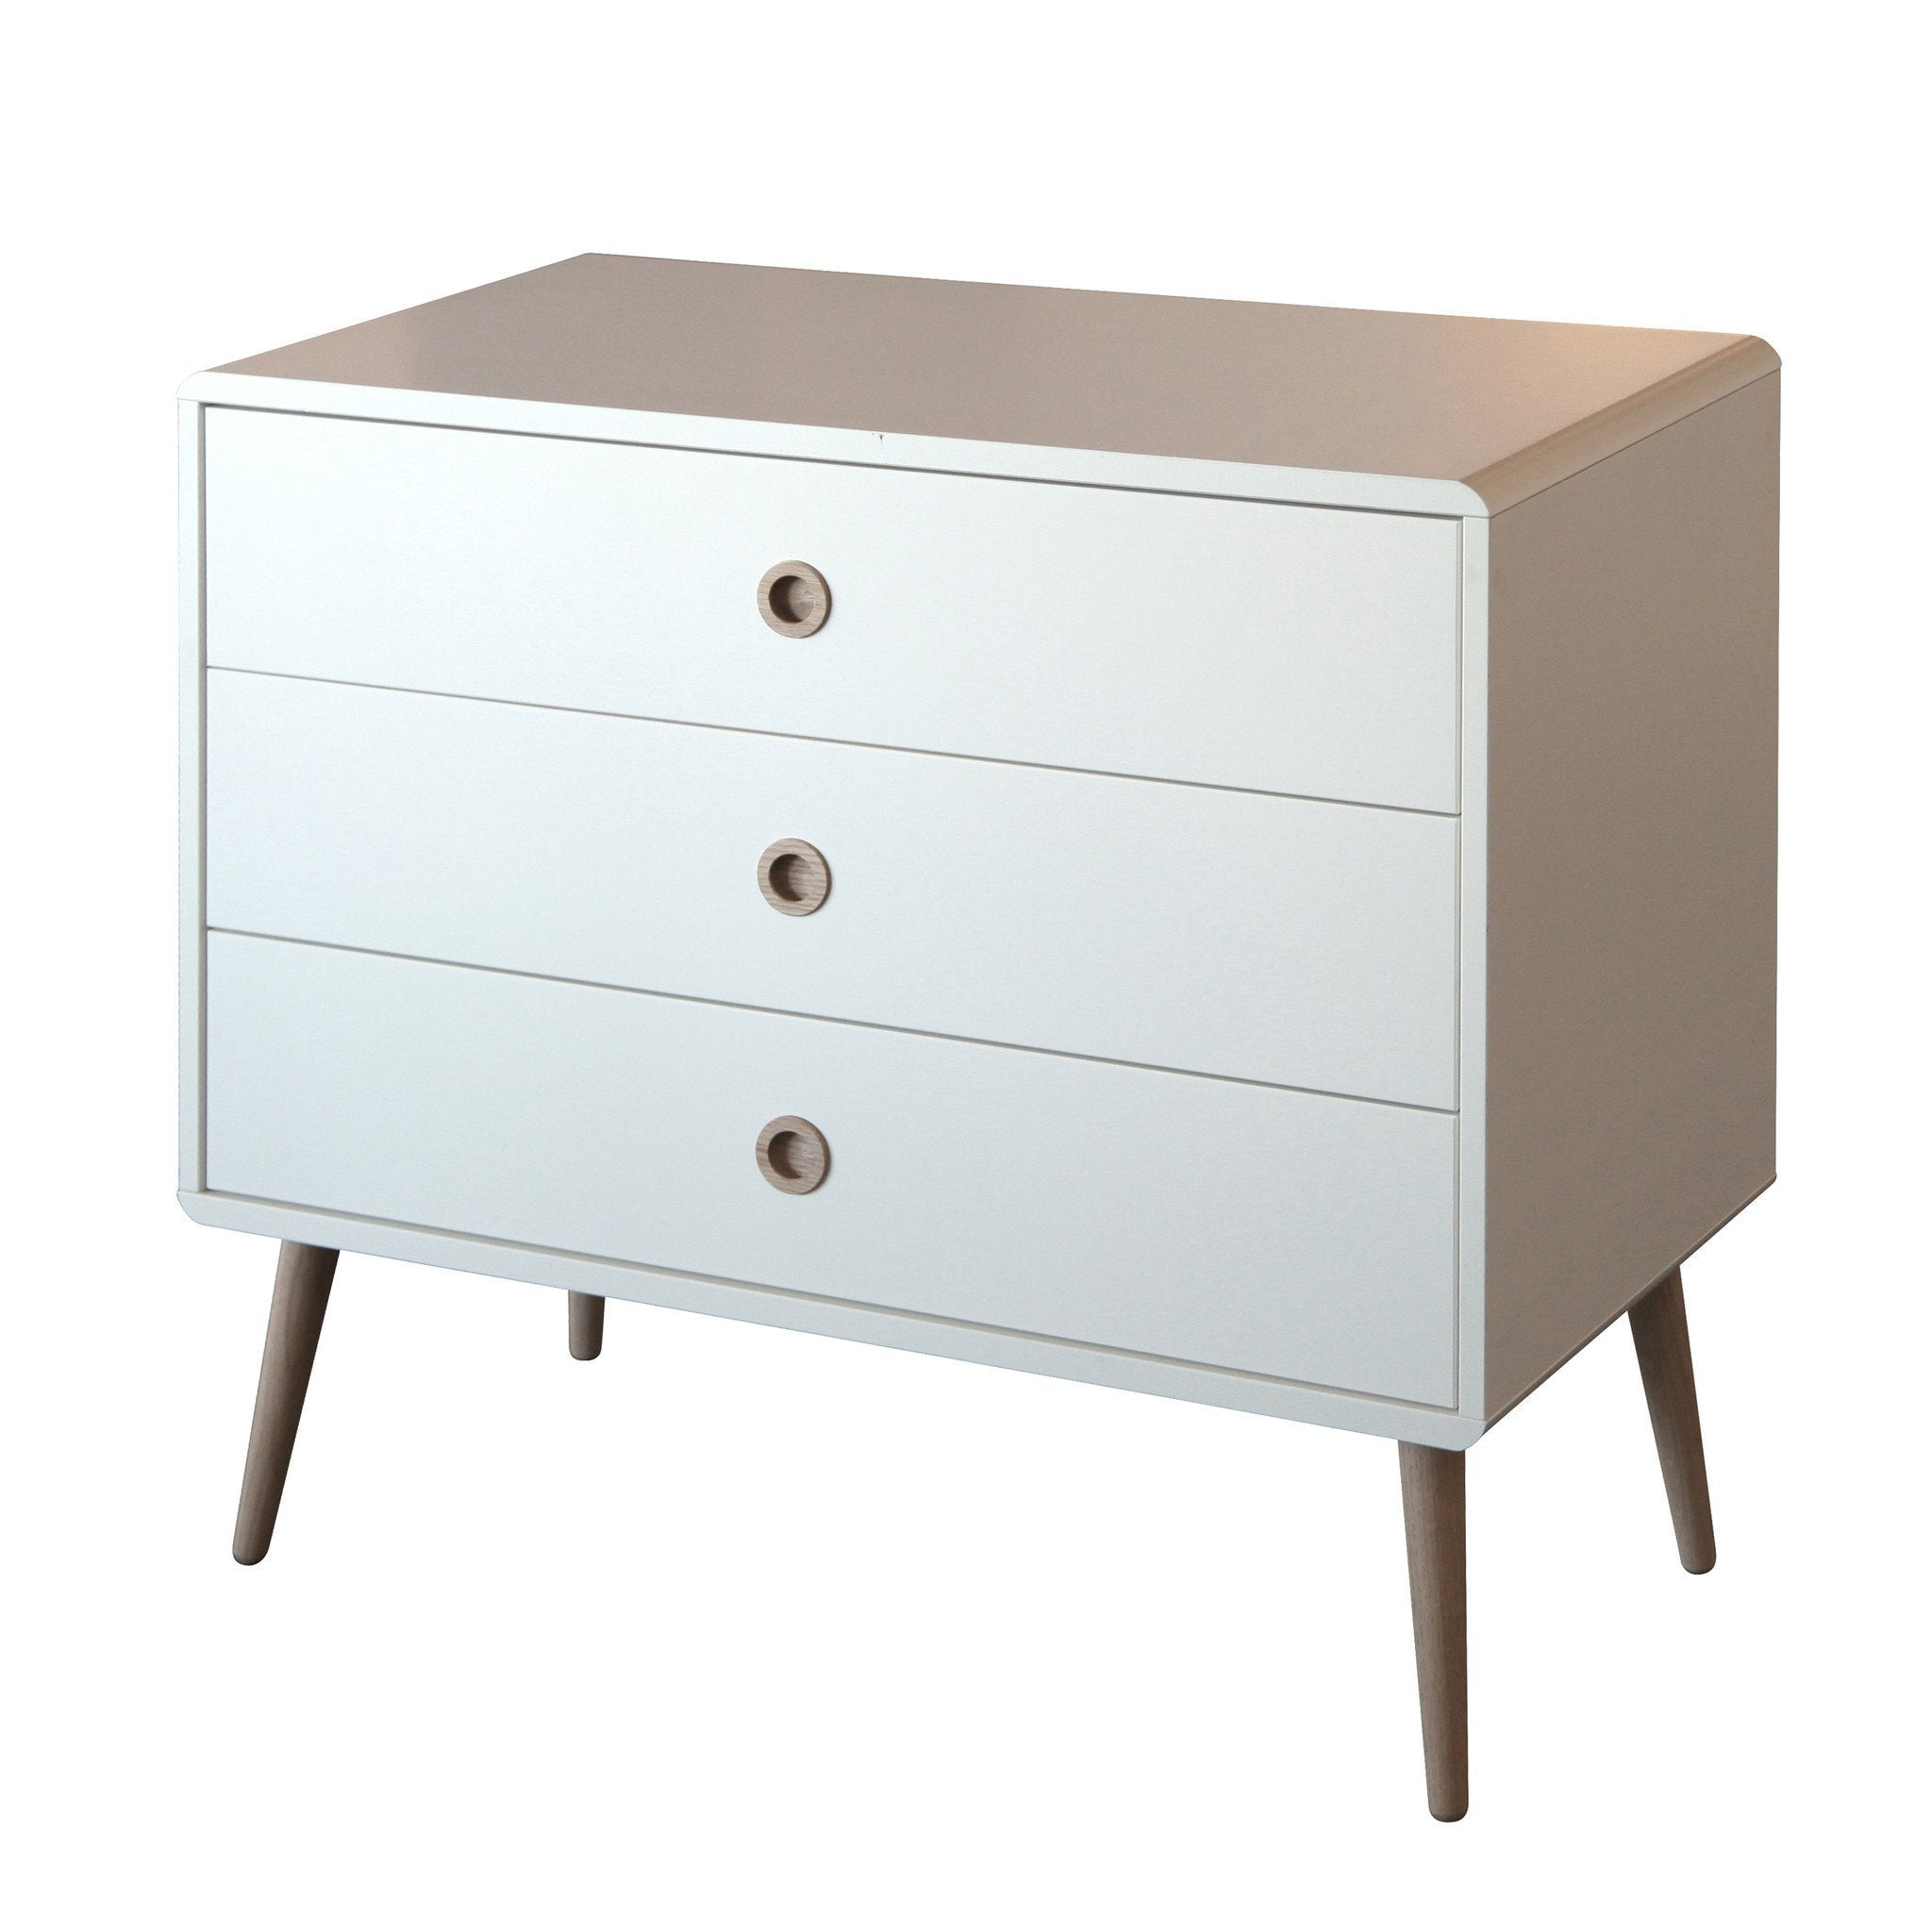 poppin light drawer nightstand gray file slim white images stow cabinet rolling